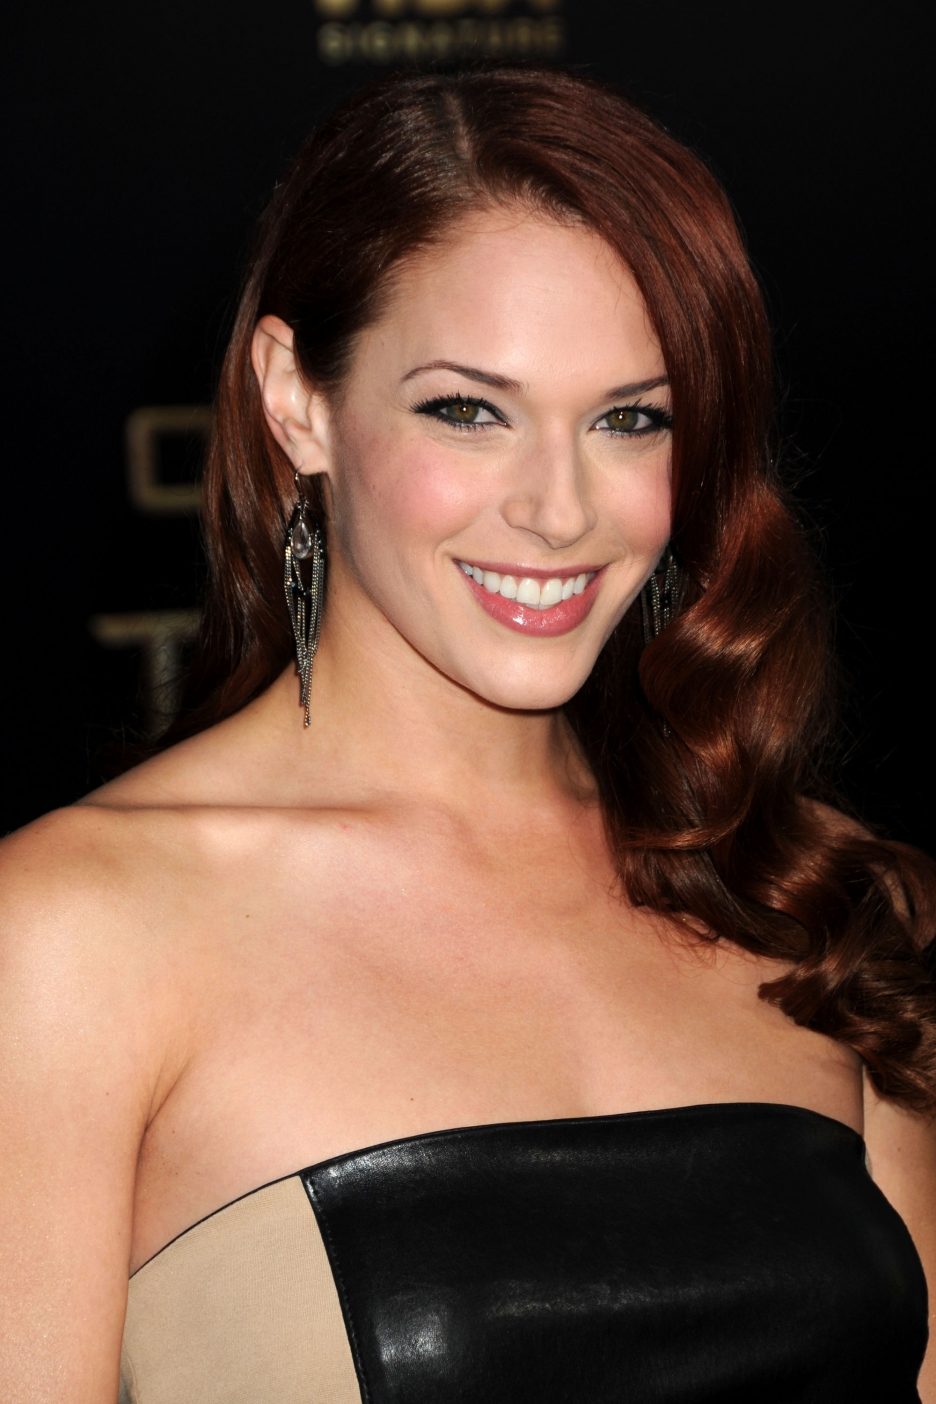 amanda righetti instagram